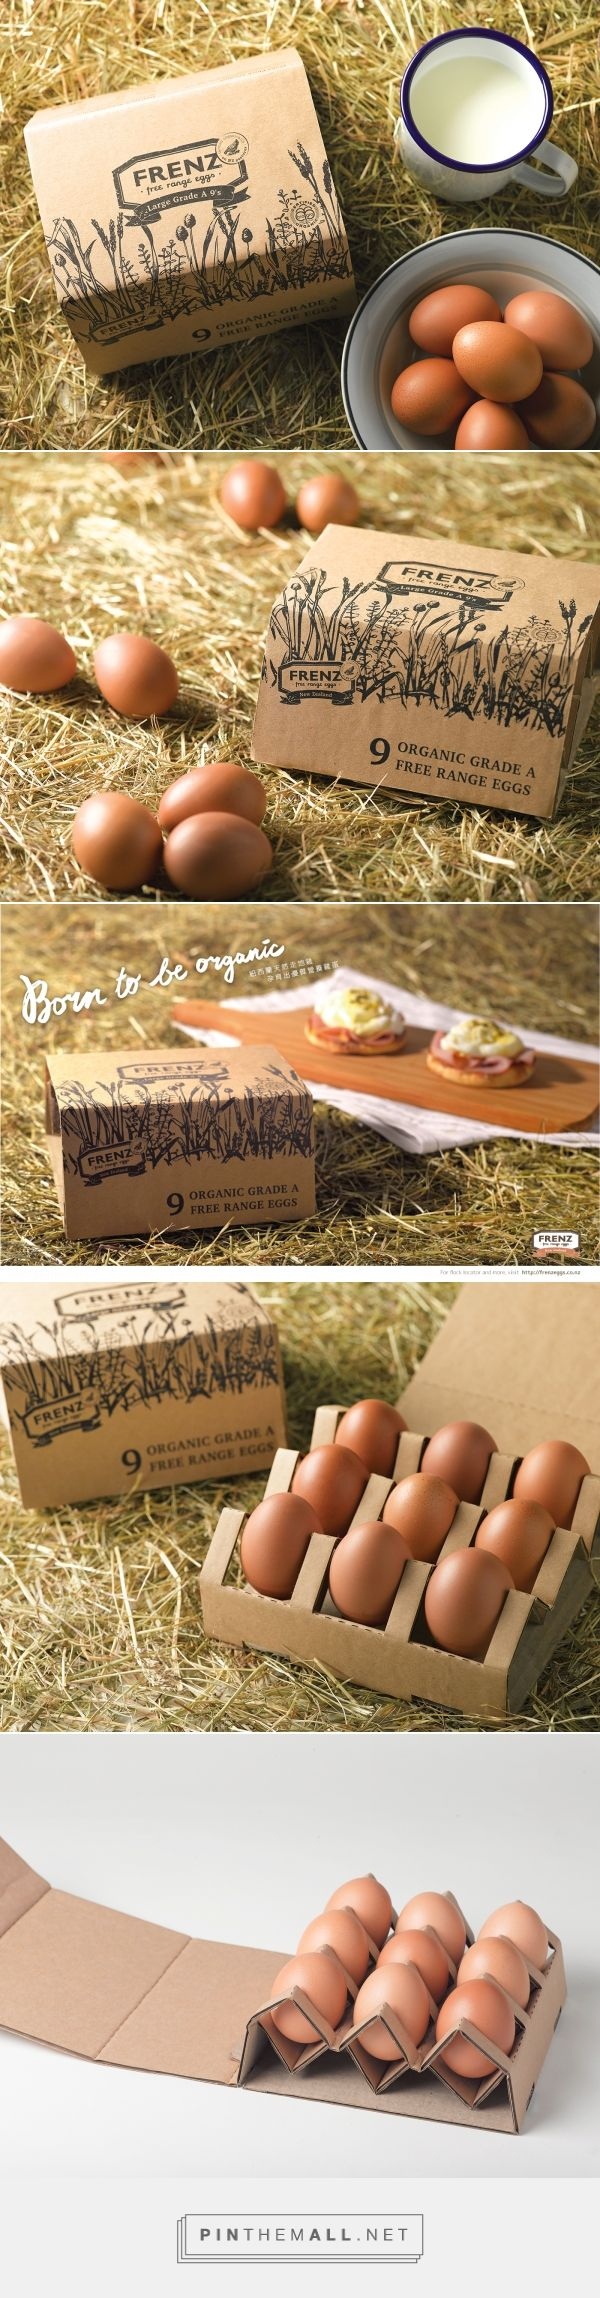 Frenz Egg Packaging (Student Project) - Packaging of the World - Creative Package Design Gallery - http://www.packagingoftheworld.com/2017/03/frenz-egg-packaging-student-project.html